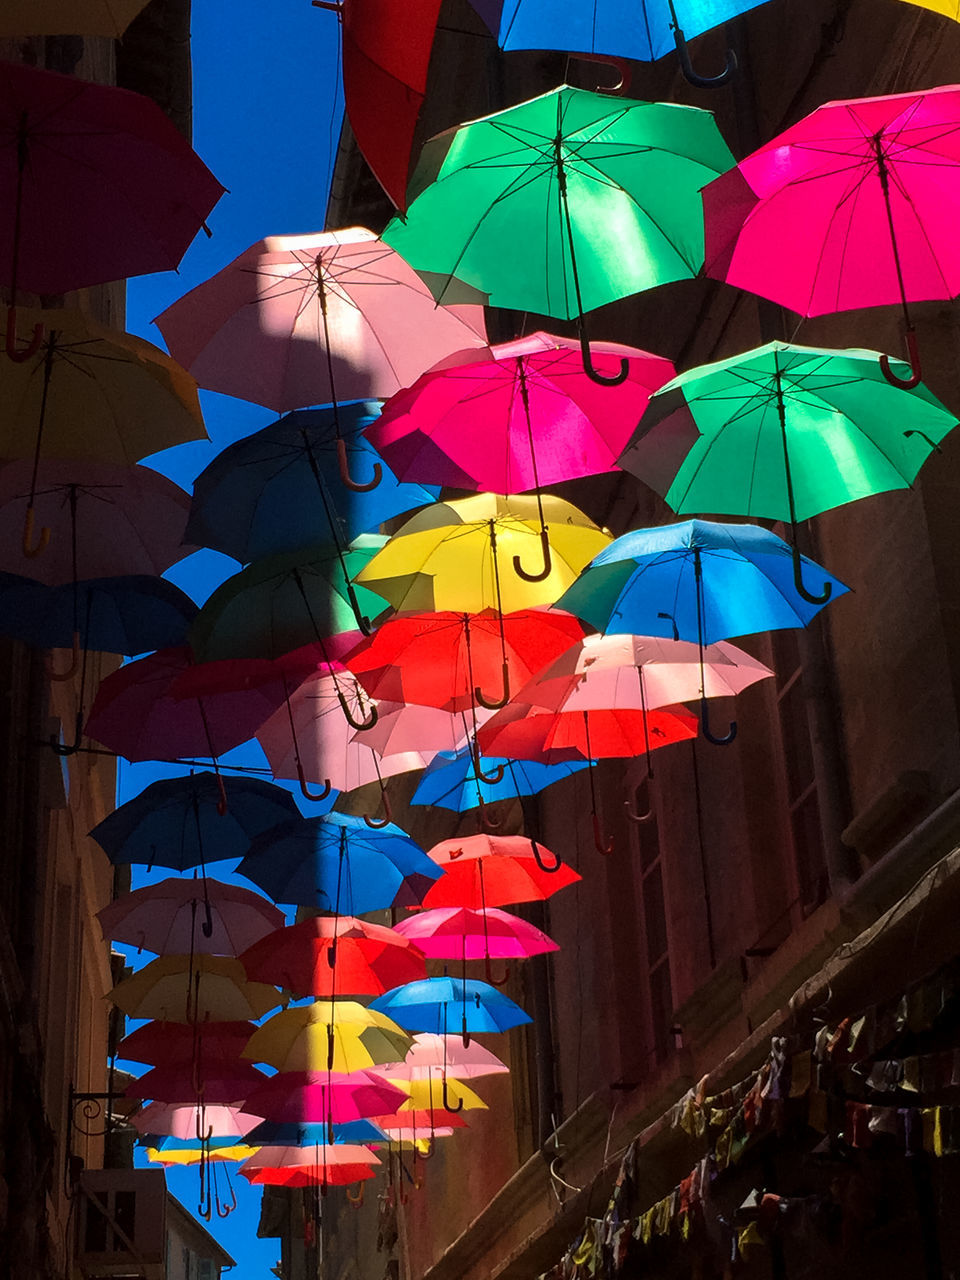 Umbrella Sky Abundance Blue Colorful Day Low Angle View Multi Colored No People Outdoors Parapluies Parasol Sky Umbrella